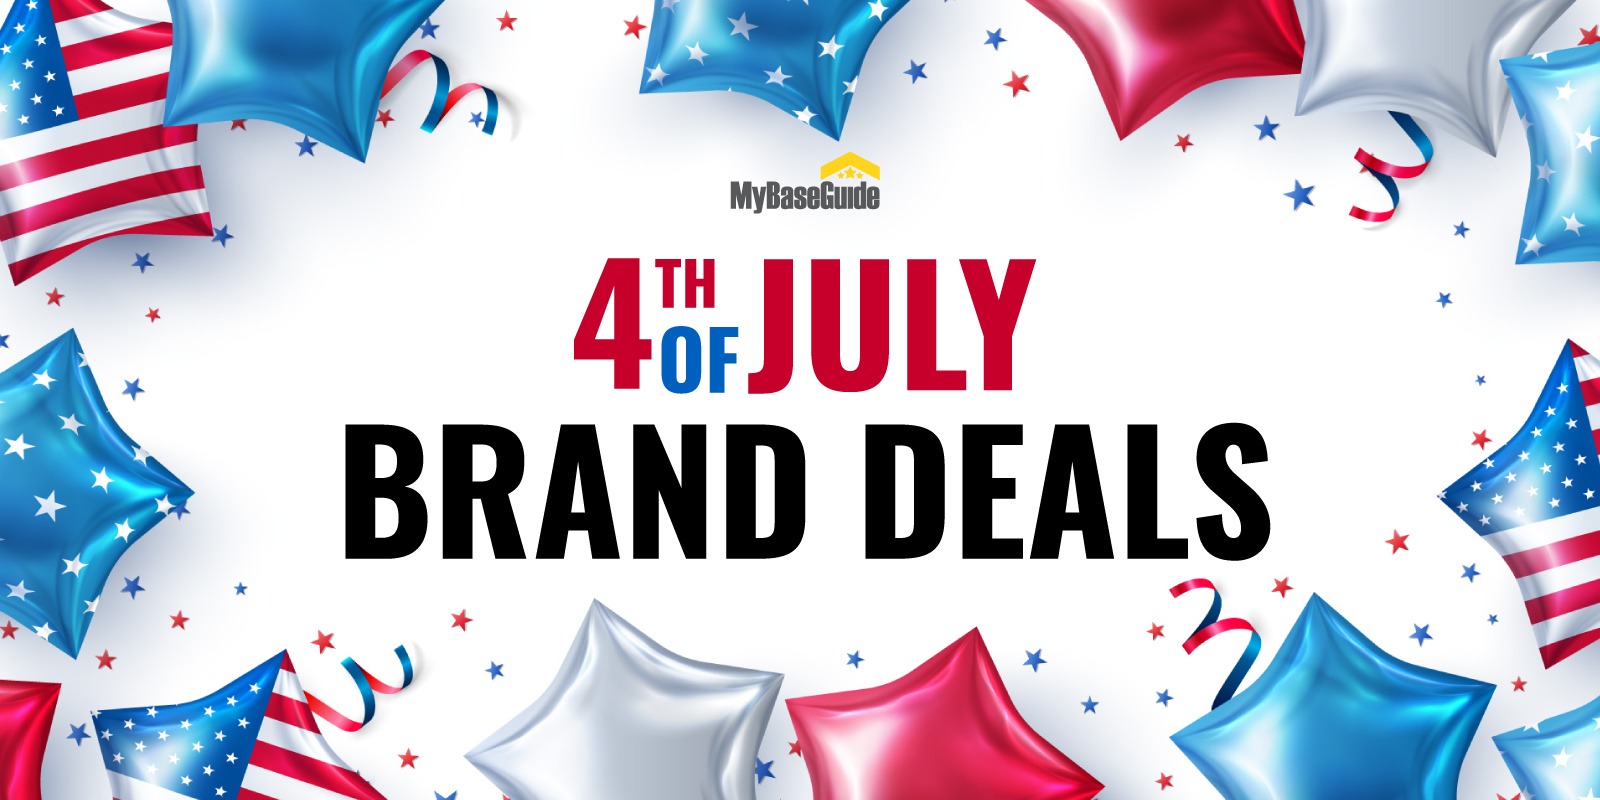 4th of July Deals: 11 Brands You Can't Miss